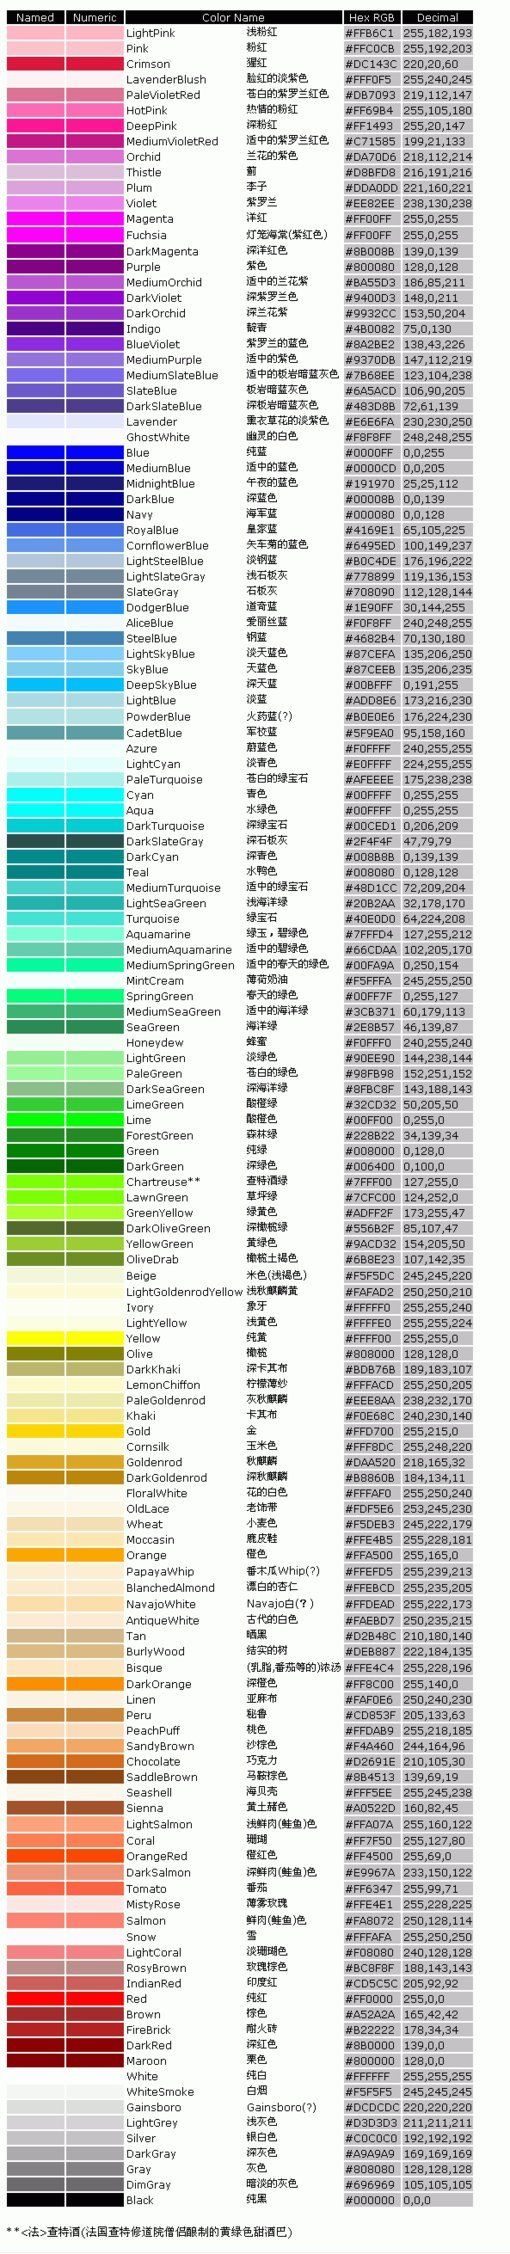 Best 25 rgb code ideas on pinterest colour hex codes Color combinations numbers